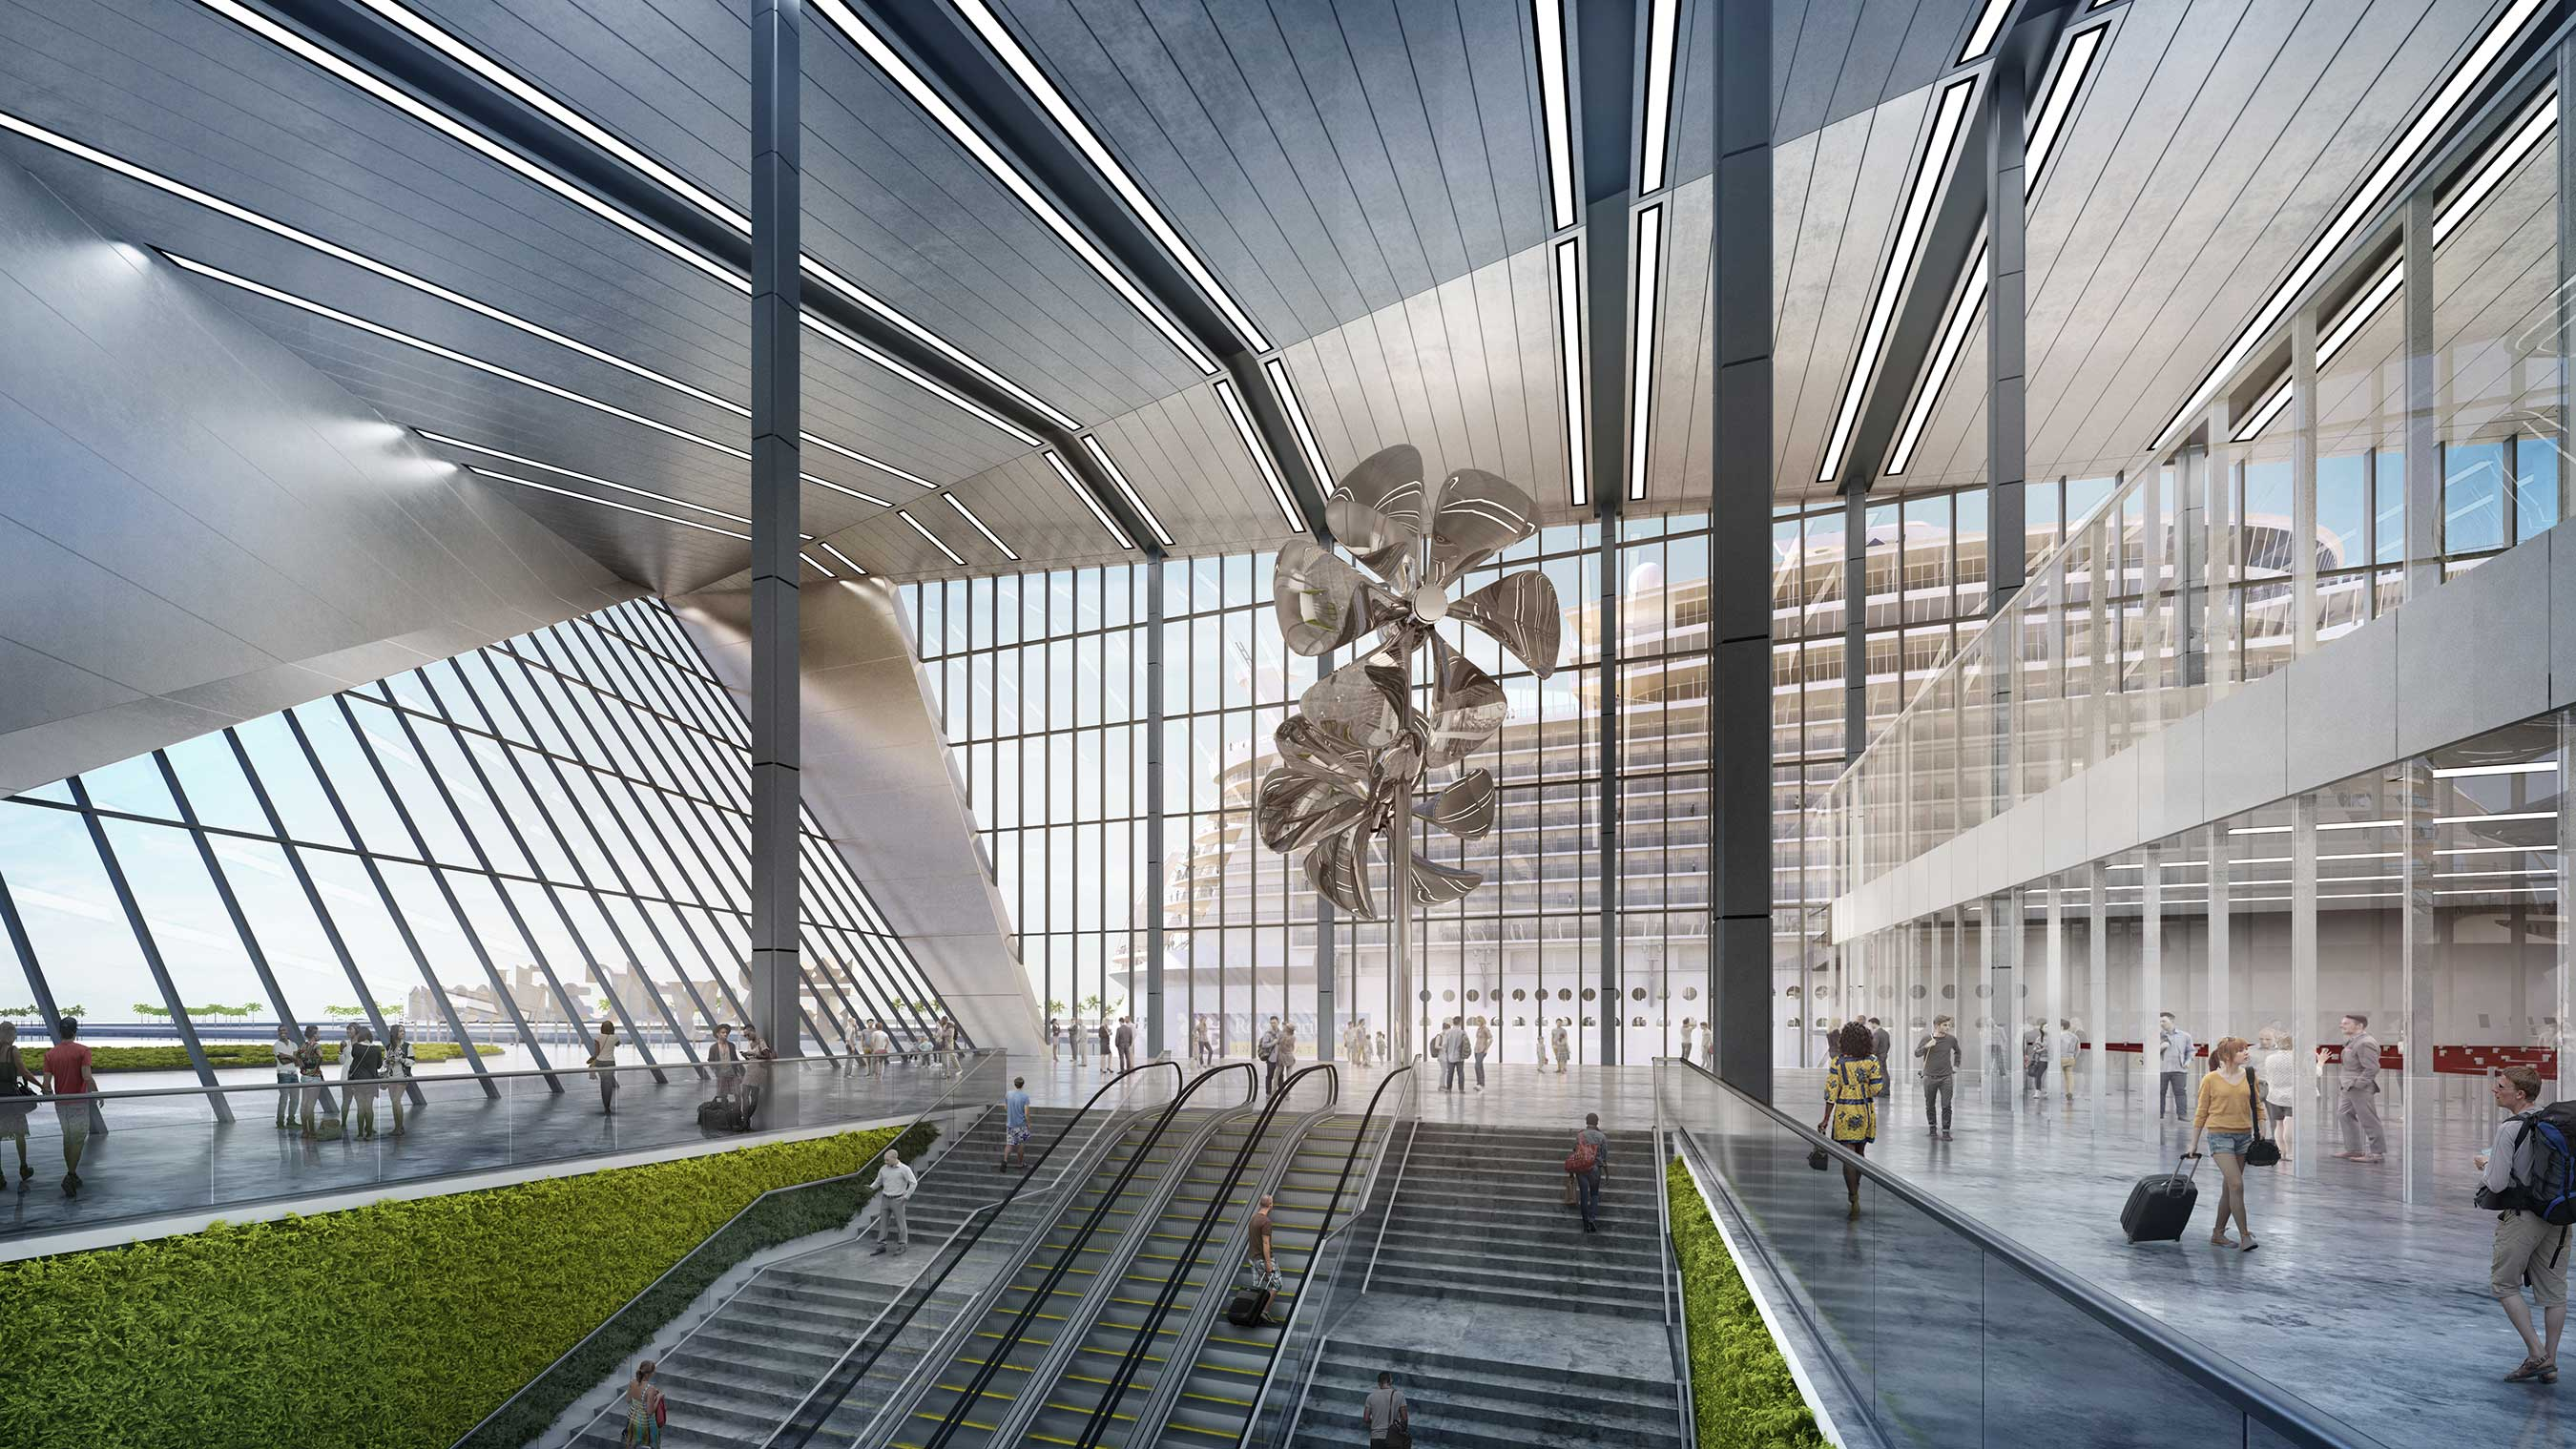 The Grand Hall of Royal Caribbean Cruises Ltd.'s (RCL) iconic terminal at PortMiami. Intuitive, bold design will bring this state-of-the-art terminal to life in late 2018.